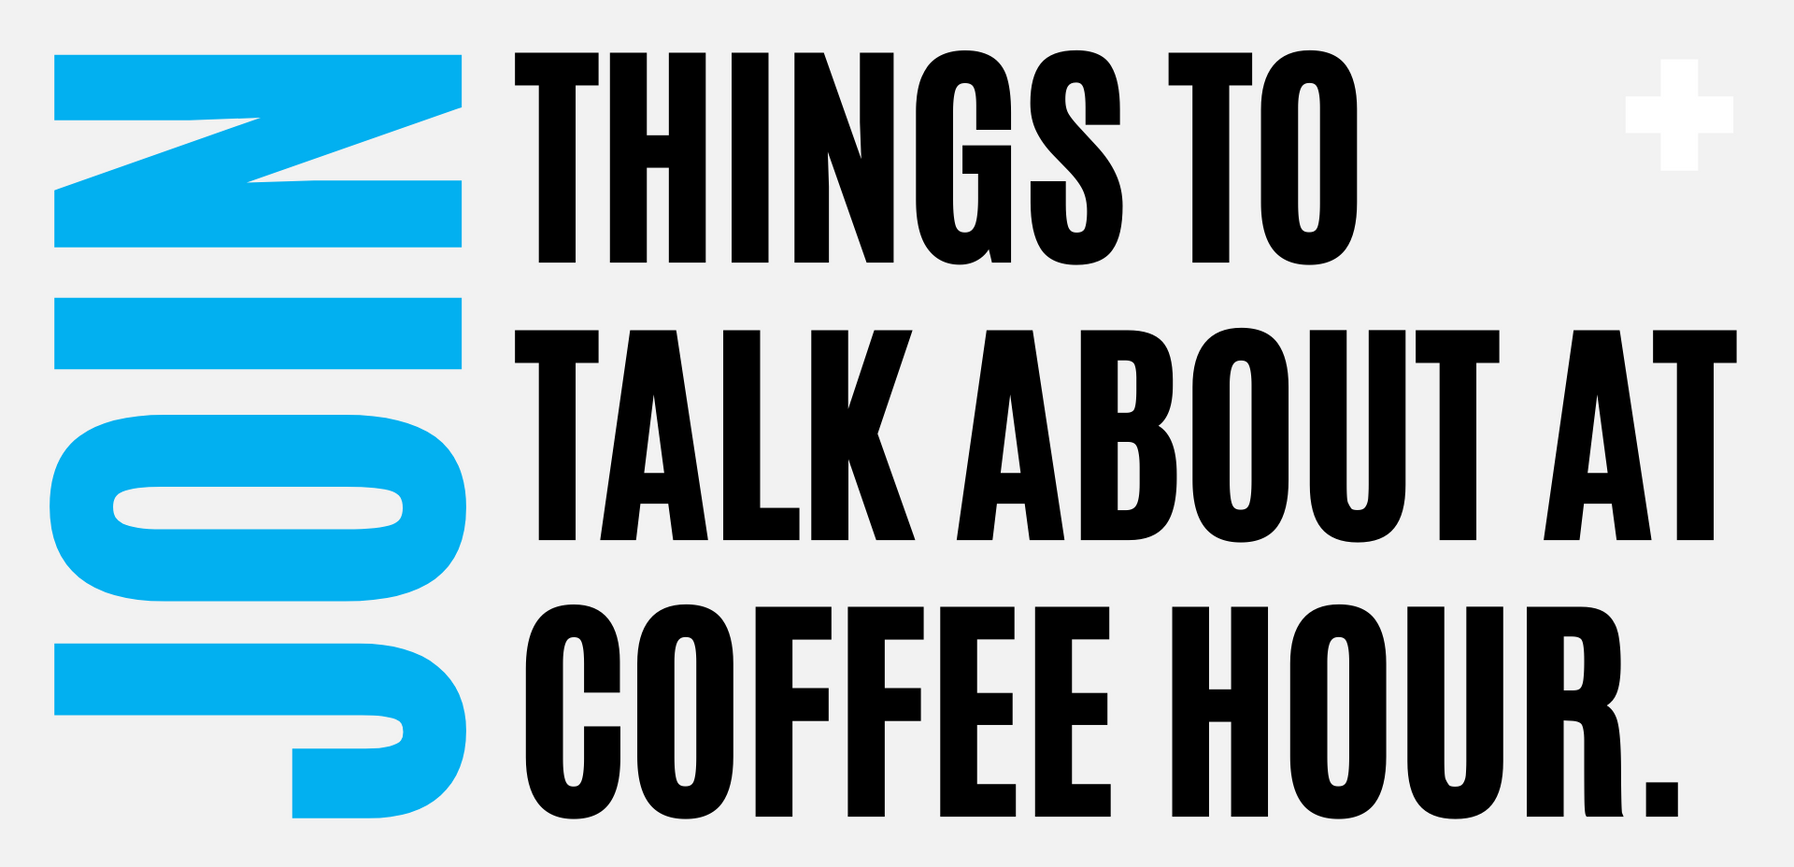 #ThingsToTalkAboutAtCoffeeHour